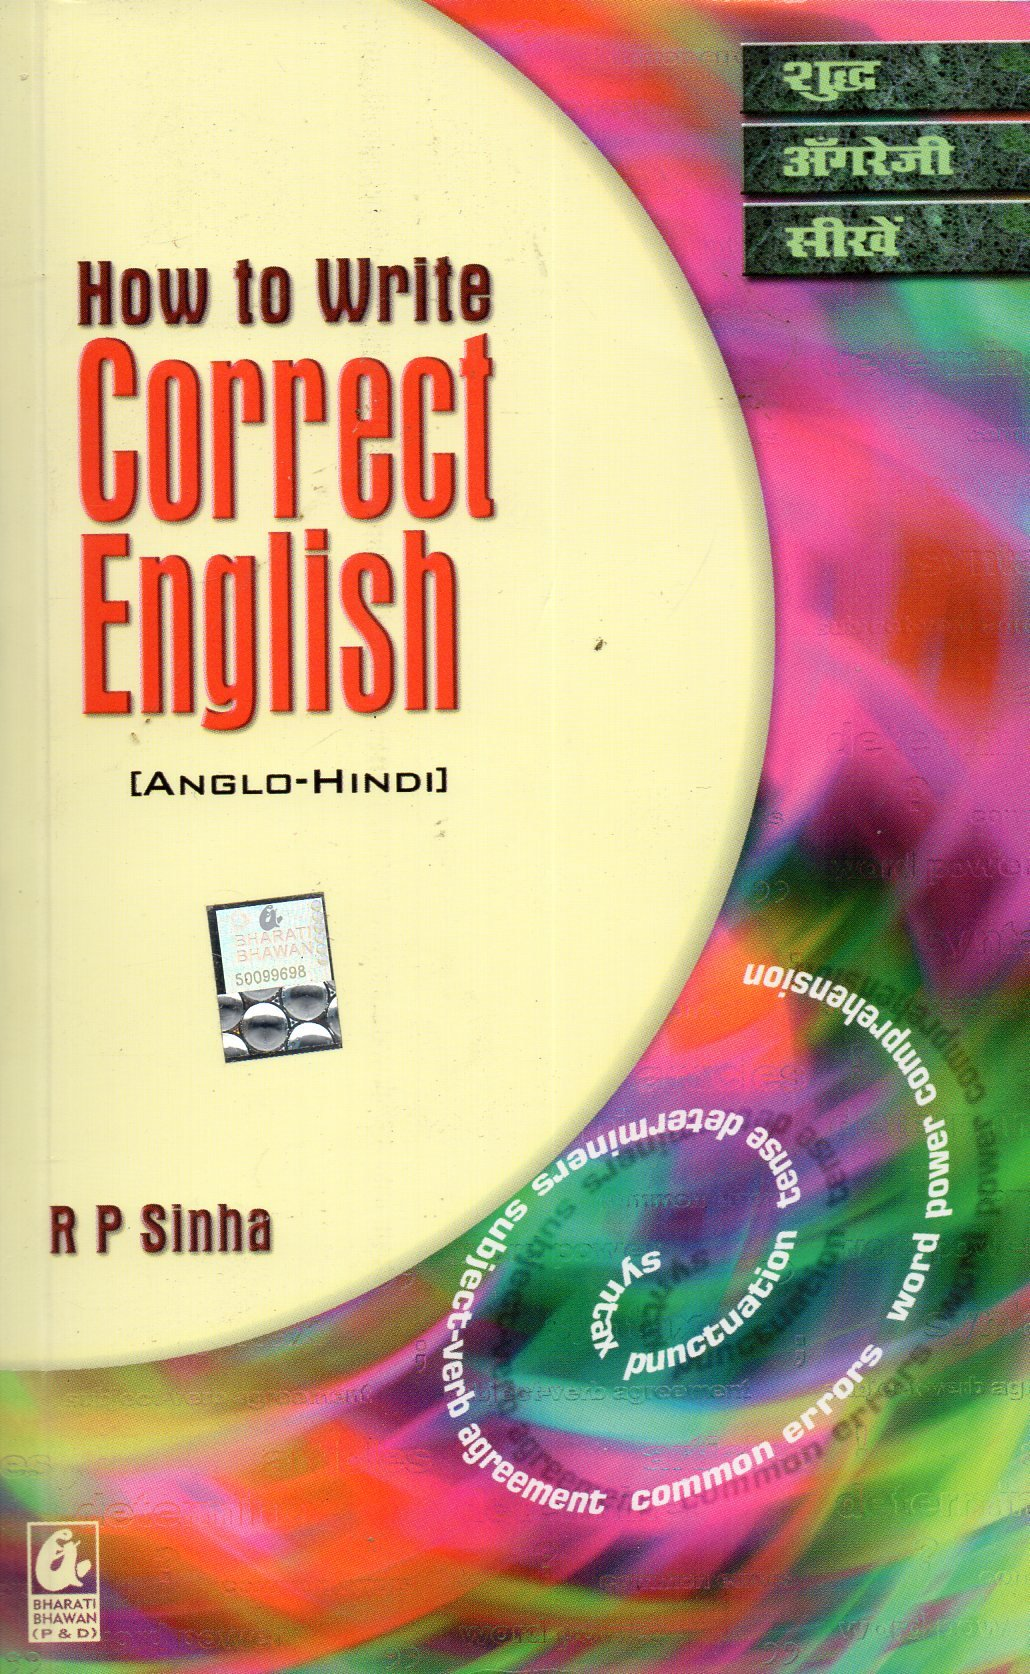 how to write correct english by r p sinha free download